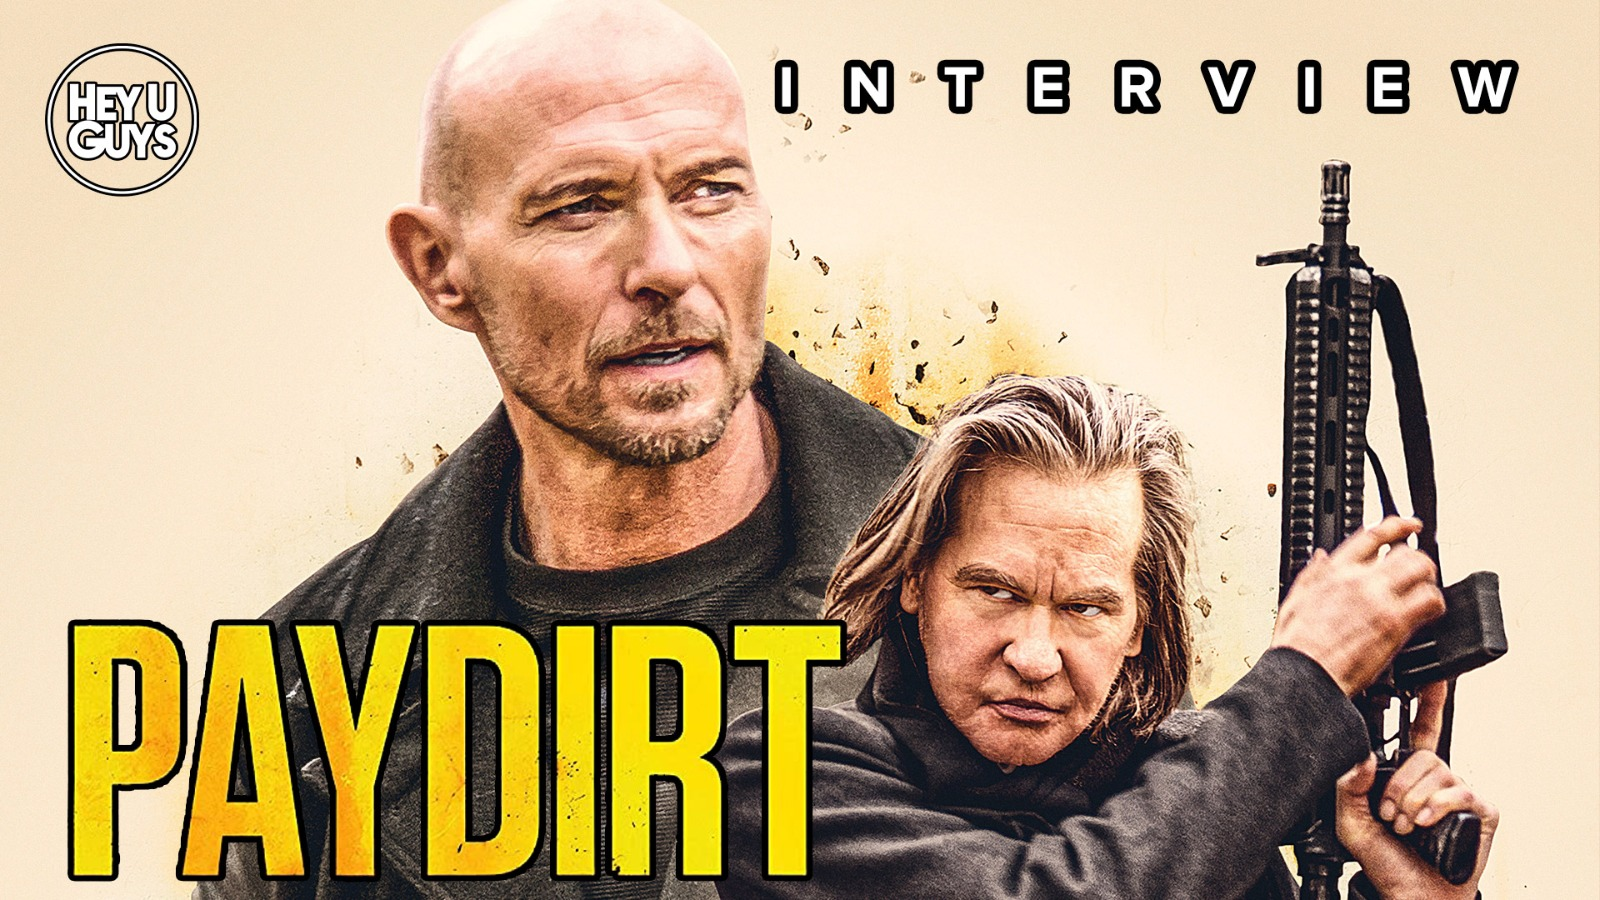 Paydirt Interview - Mercedes Kilmer